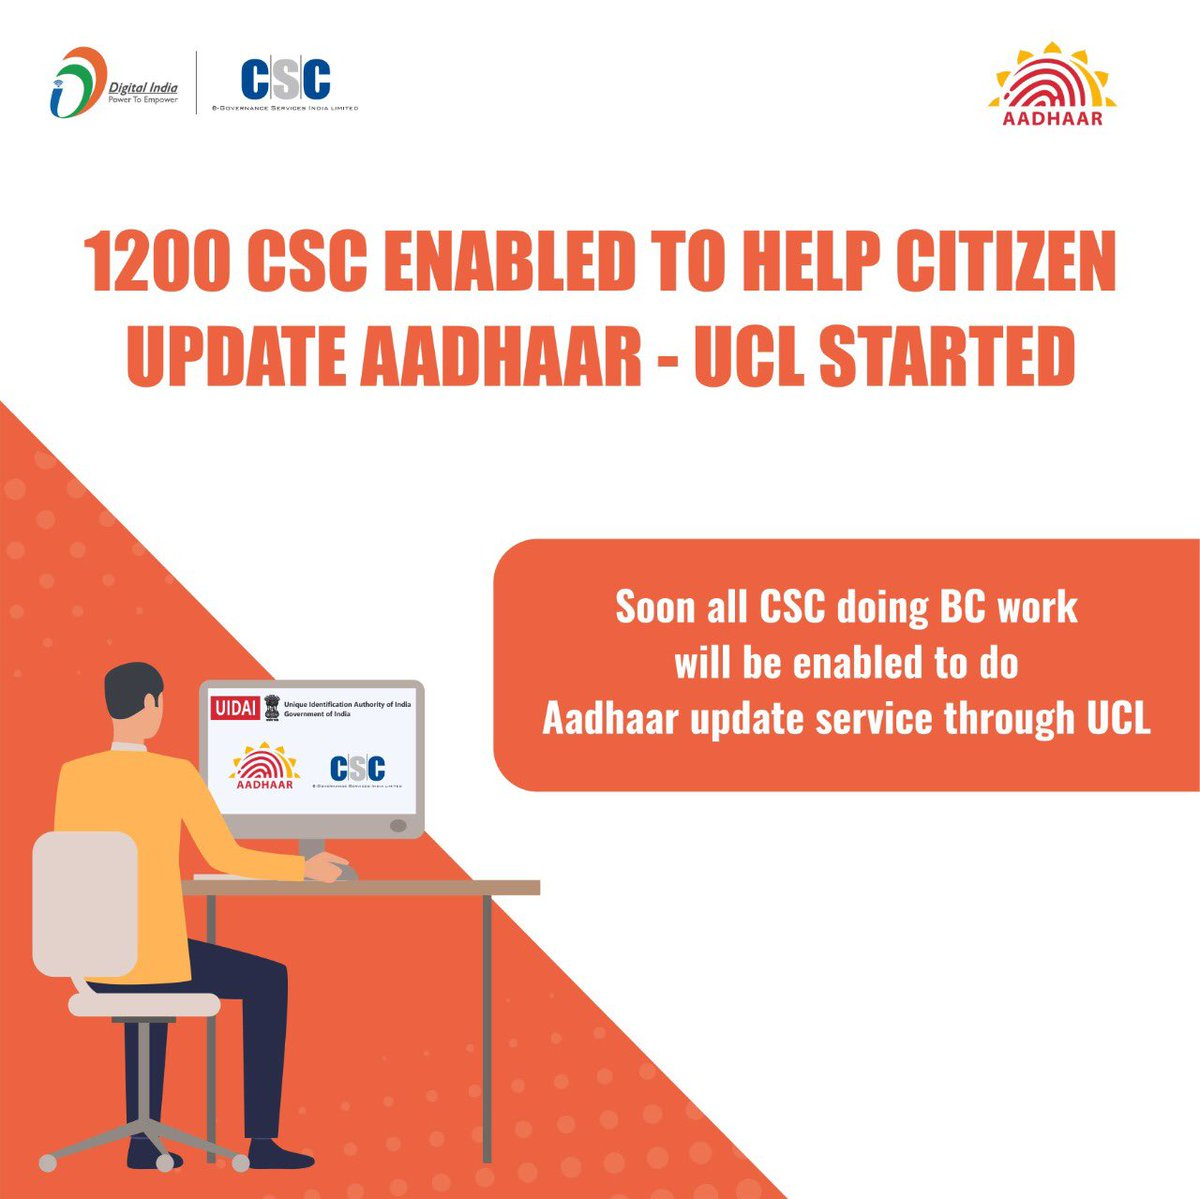 All CSC BC will be enabled UCL https://t.co/5nYpbfPy2L